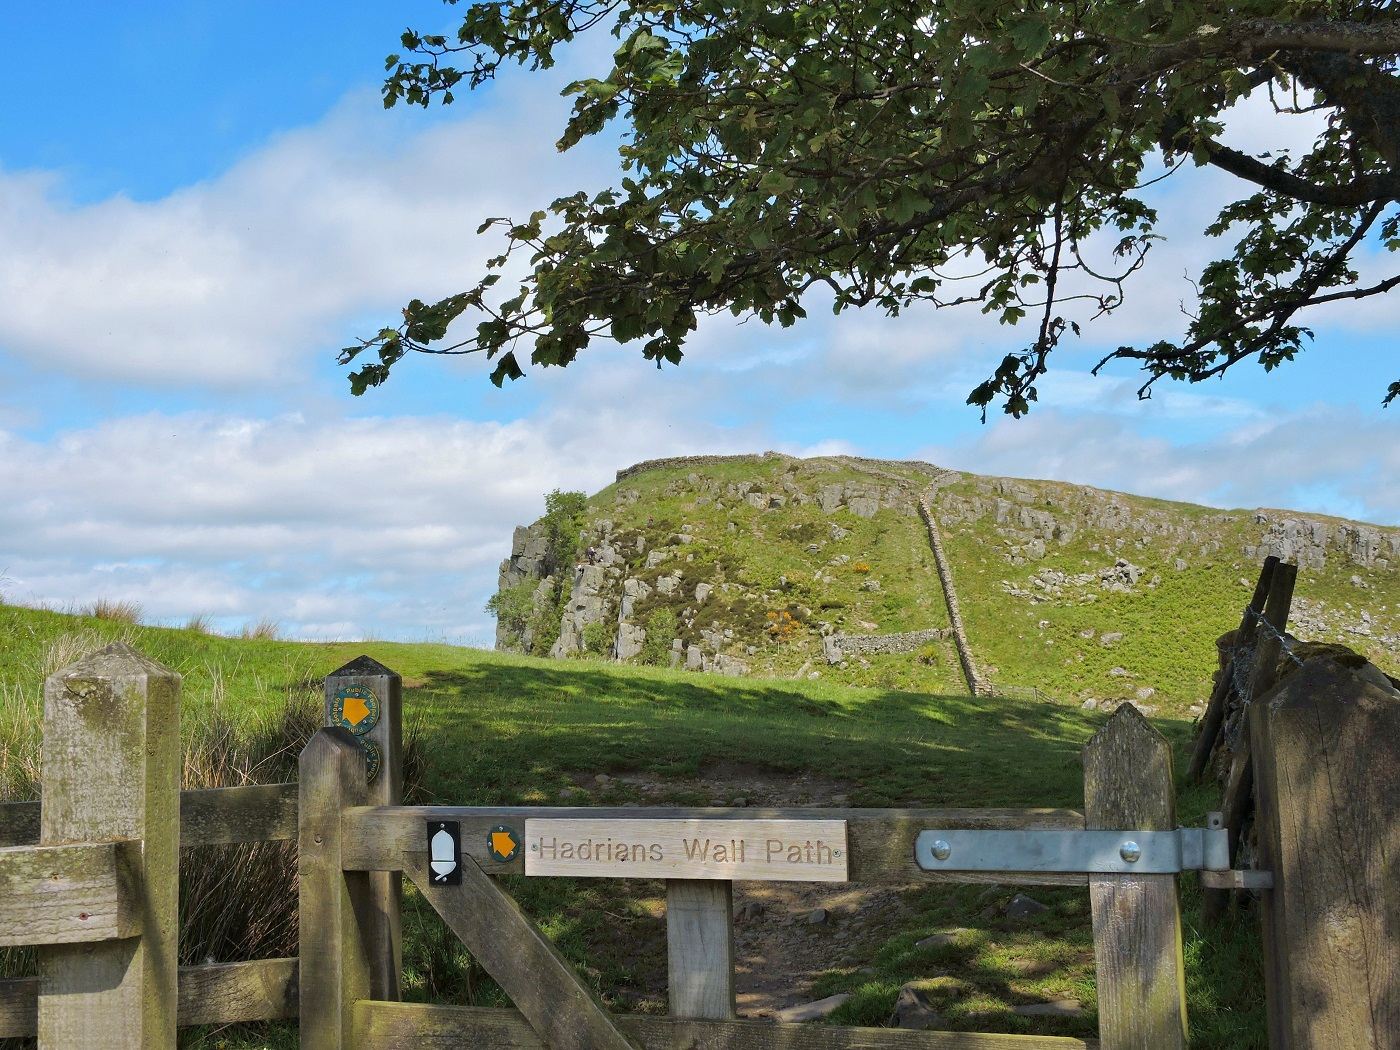 gate with hadrian wall sign